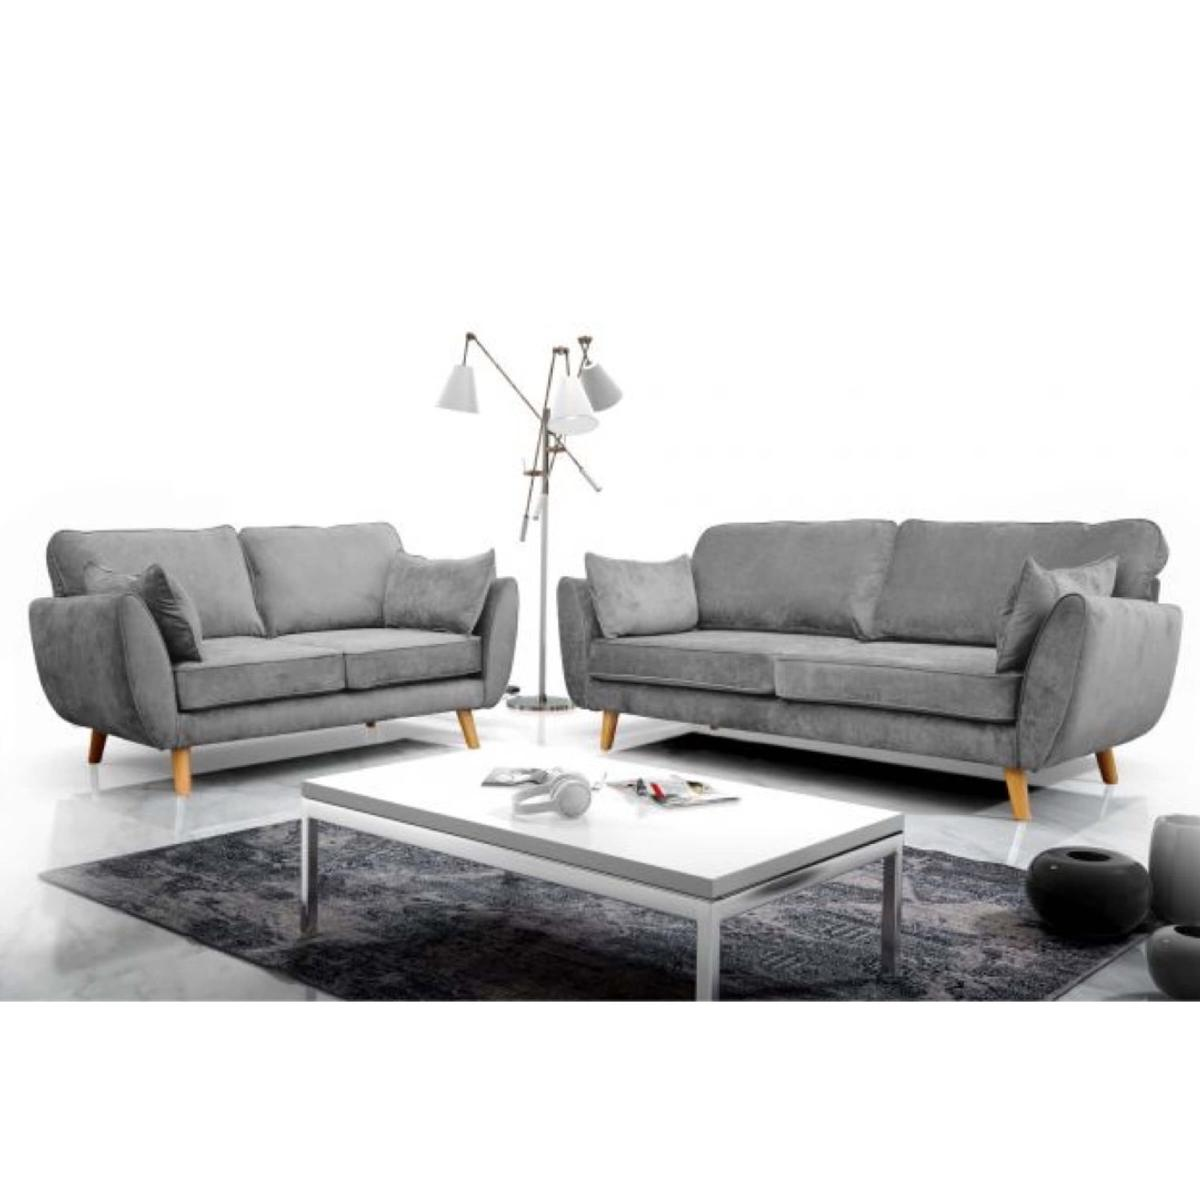 Zinc Fabric Sofa Collection Grey Blue Mink In E7 London Für 599 00 Zum Verkauf Shpock At